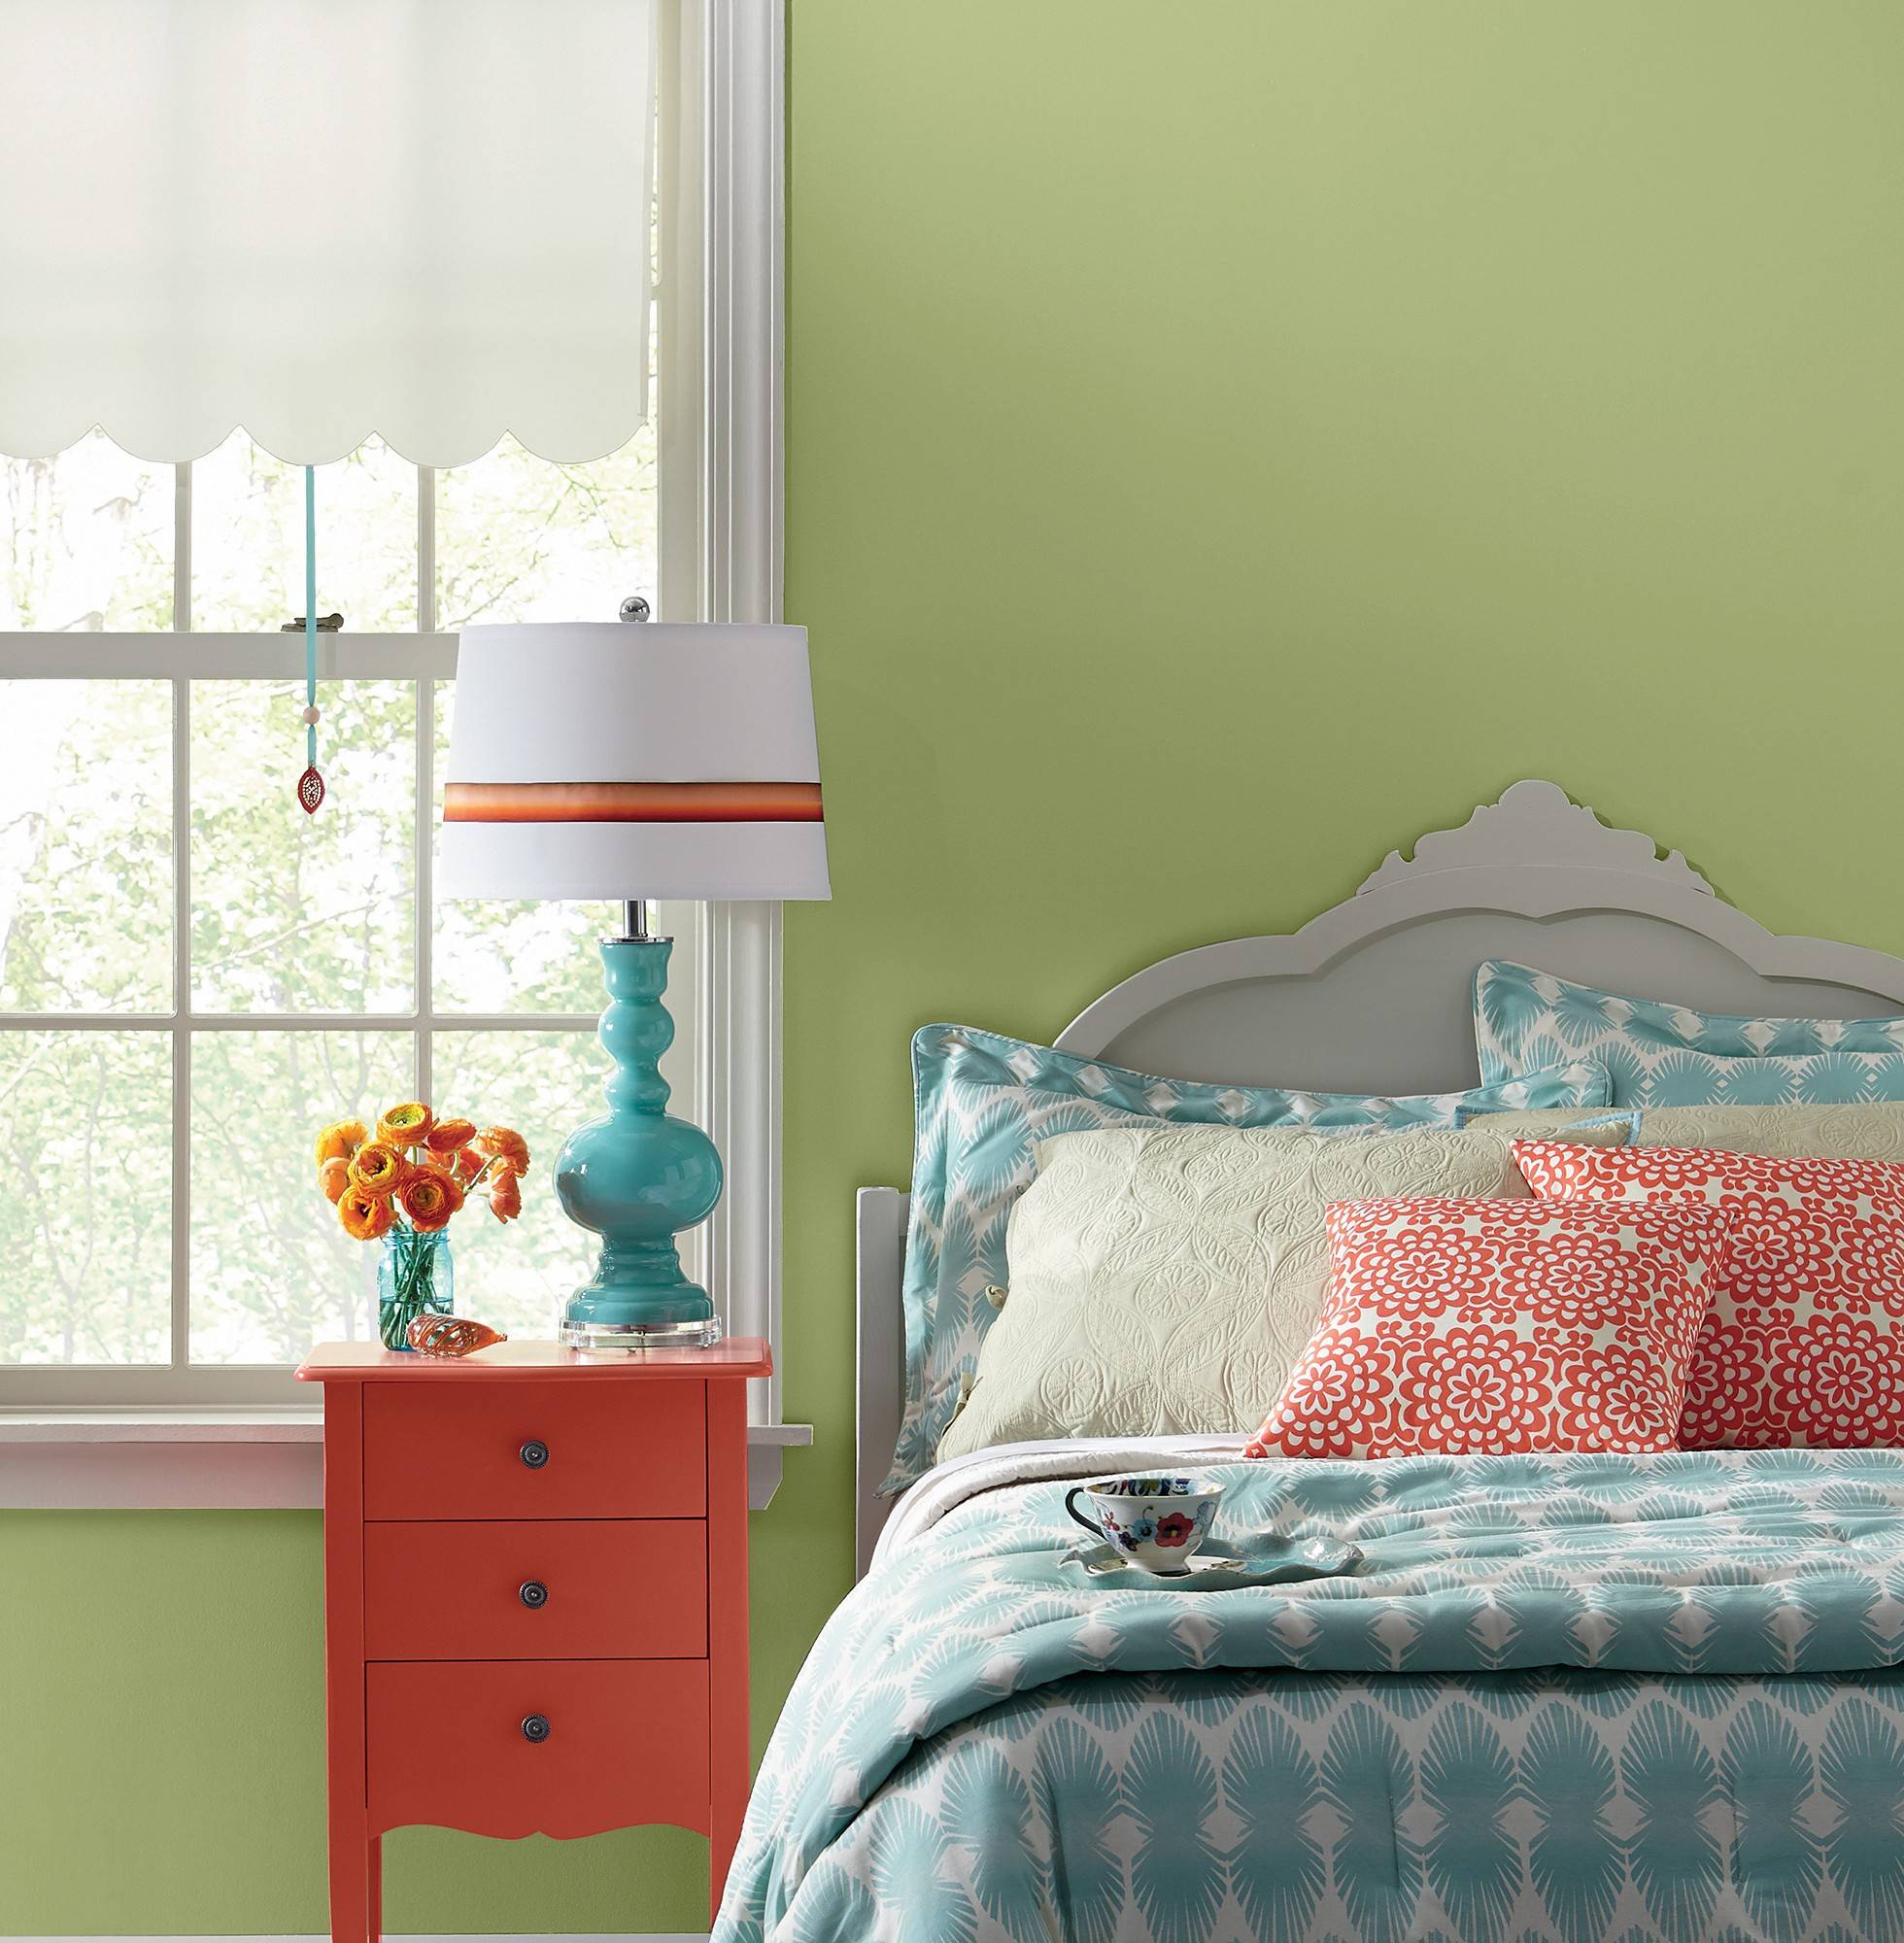 A cheerful bedroom is painted in Valspar's Leaf Bud.